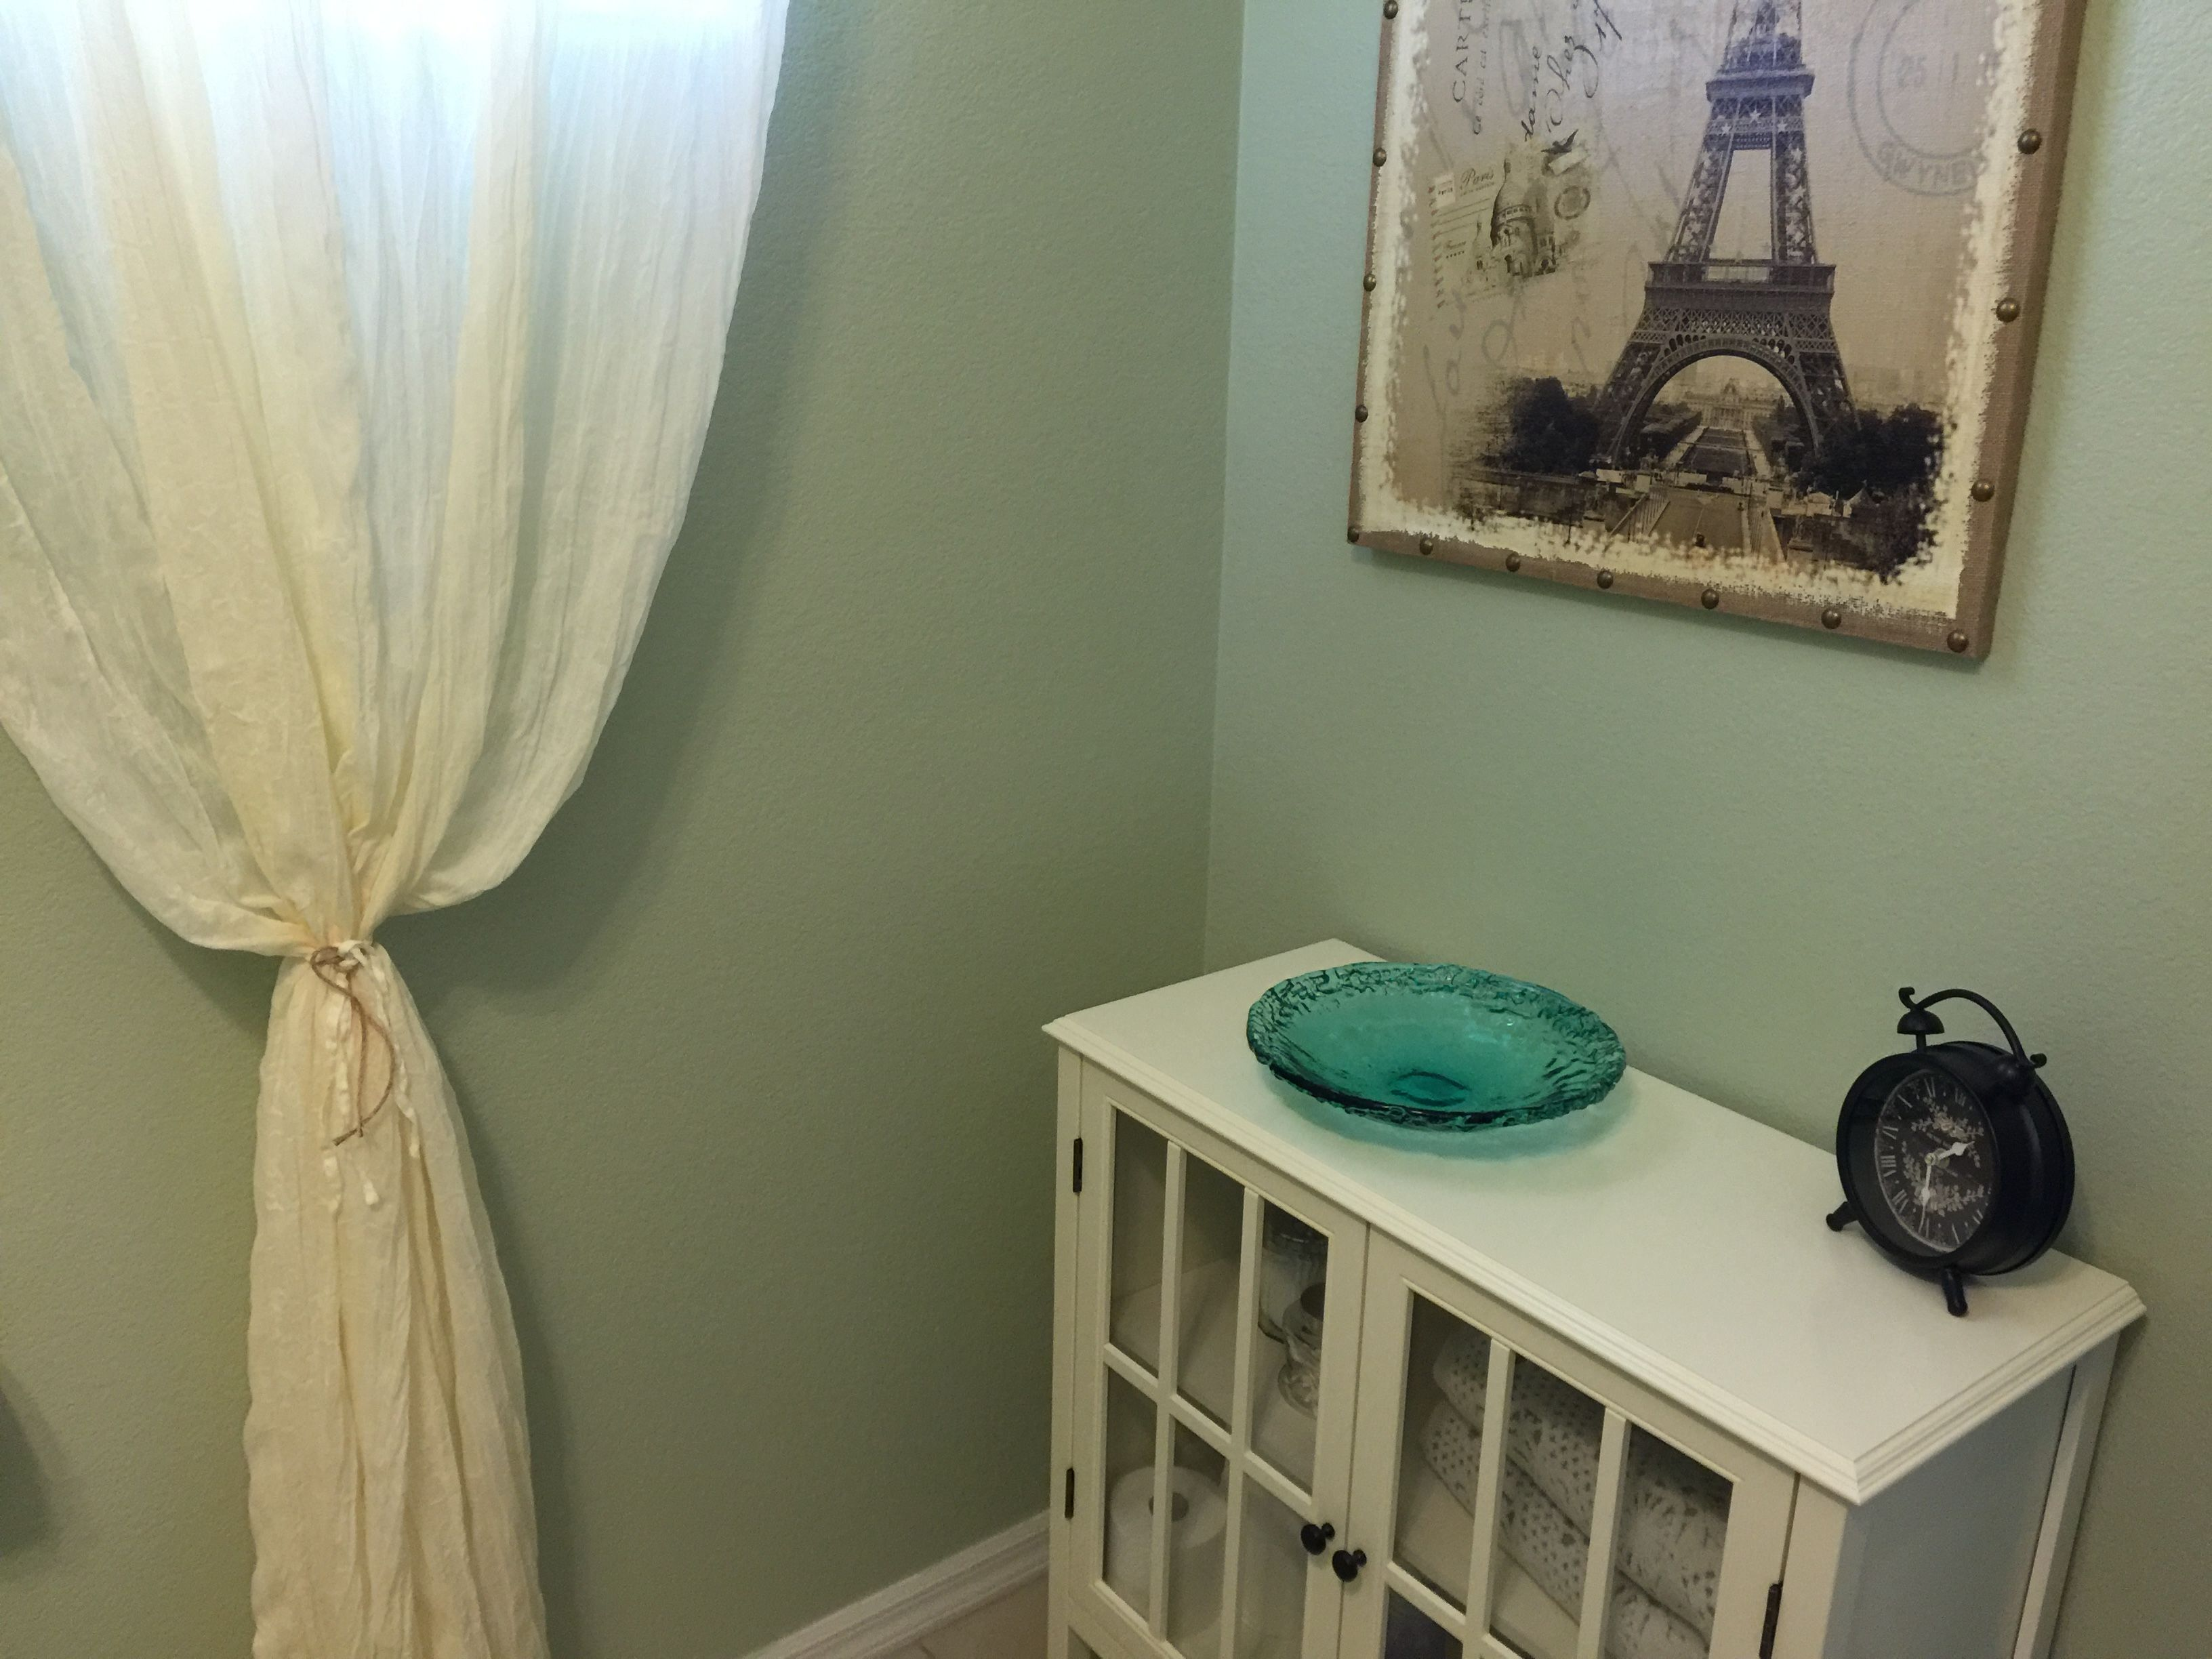 Paint Color Is Soft Sage By Glidden